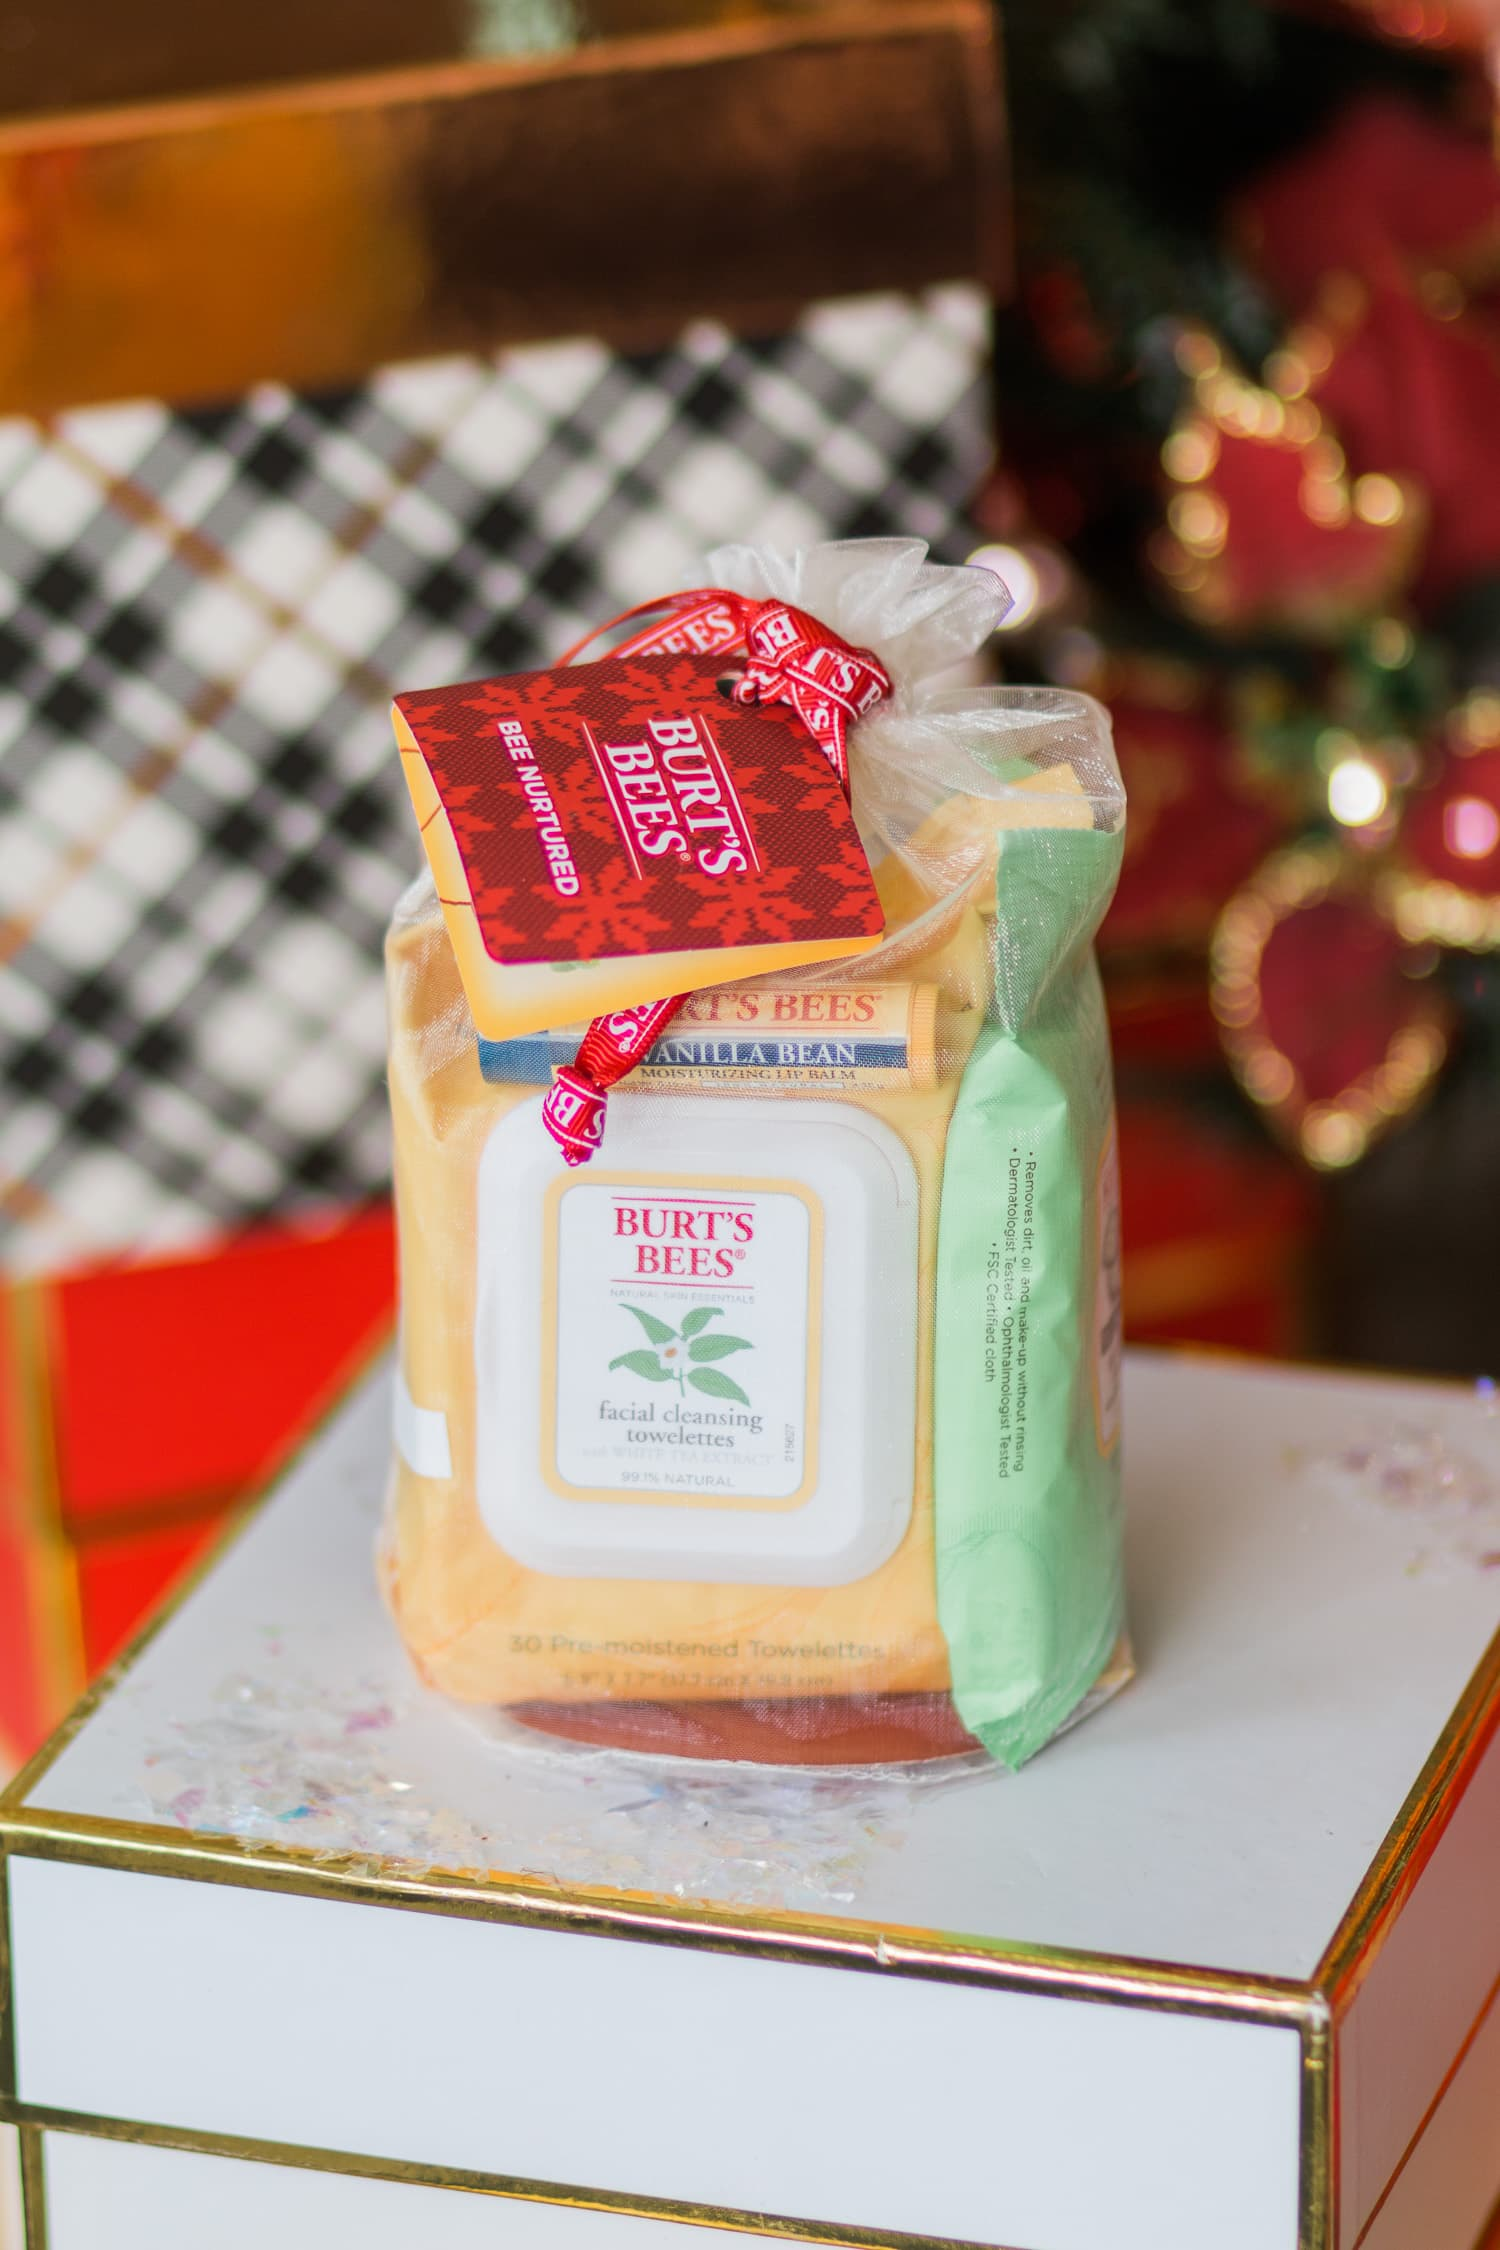 burts-bees-bee-natured-gift-set-christmas-gift-ideas-for-women-9825